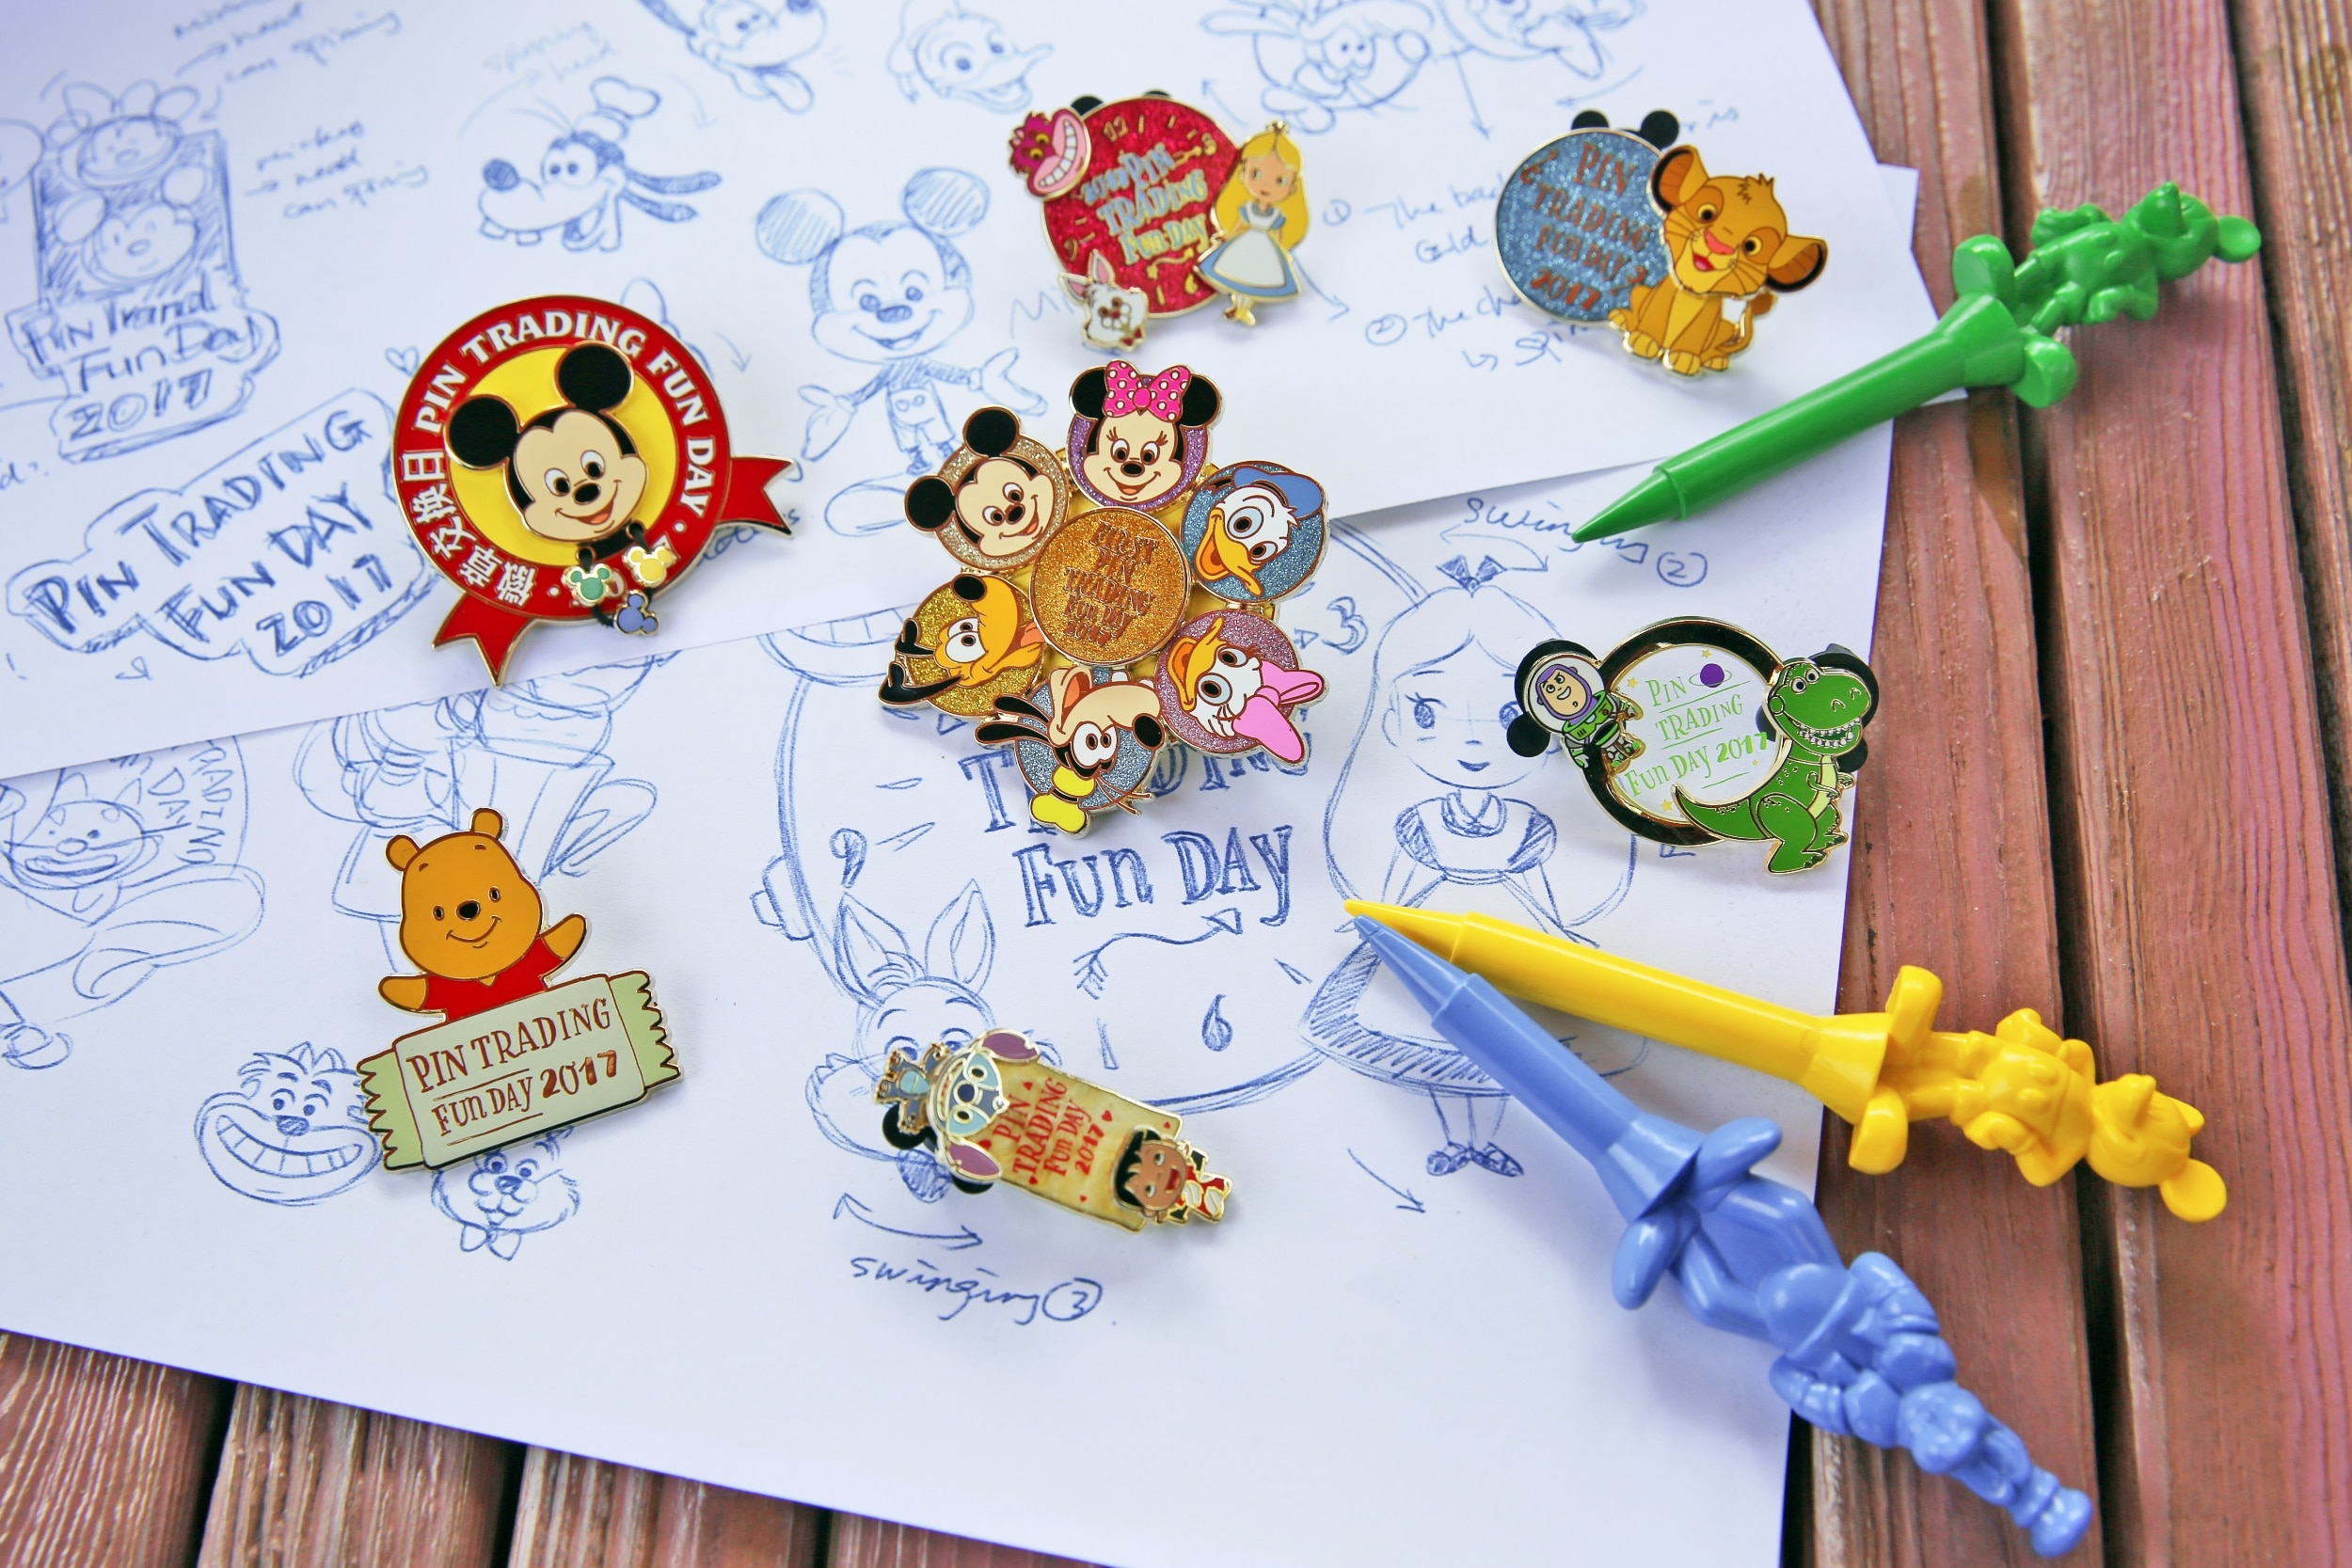 Pin Trading Shanghai Disney Resort